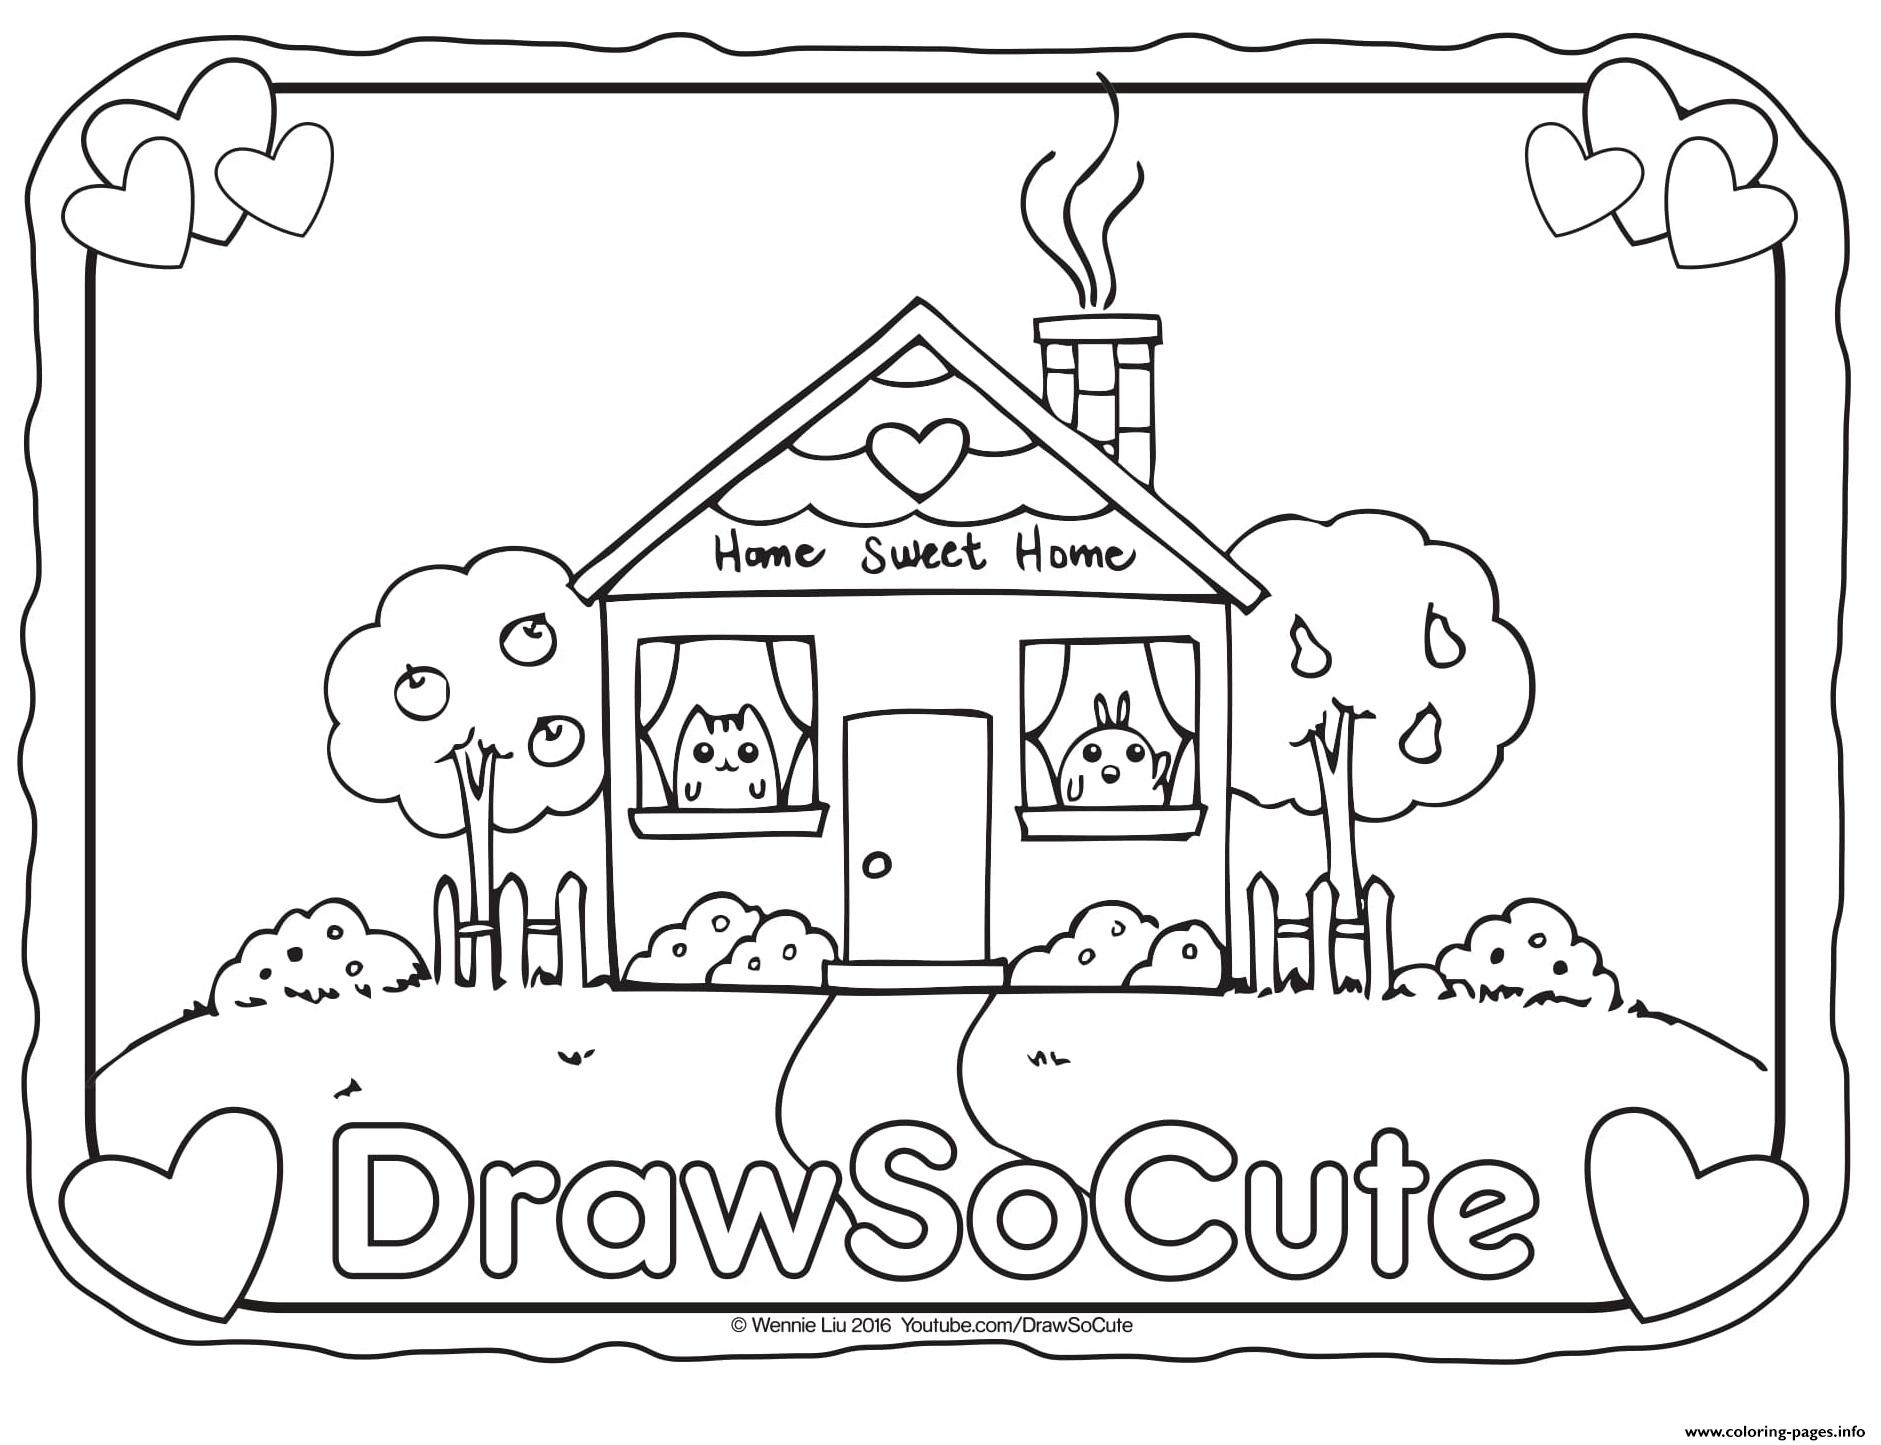 House draw so cute coloring pages printable